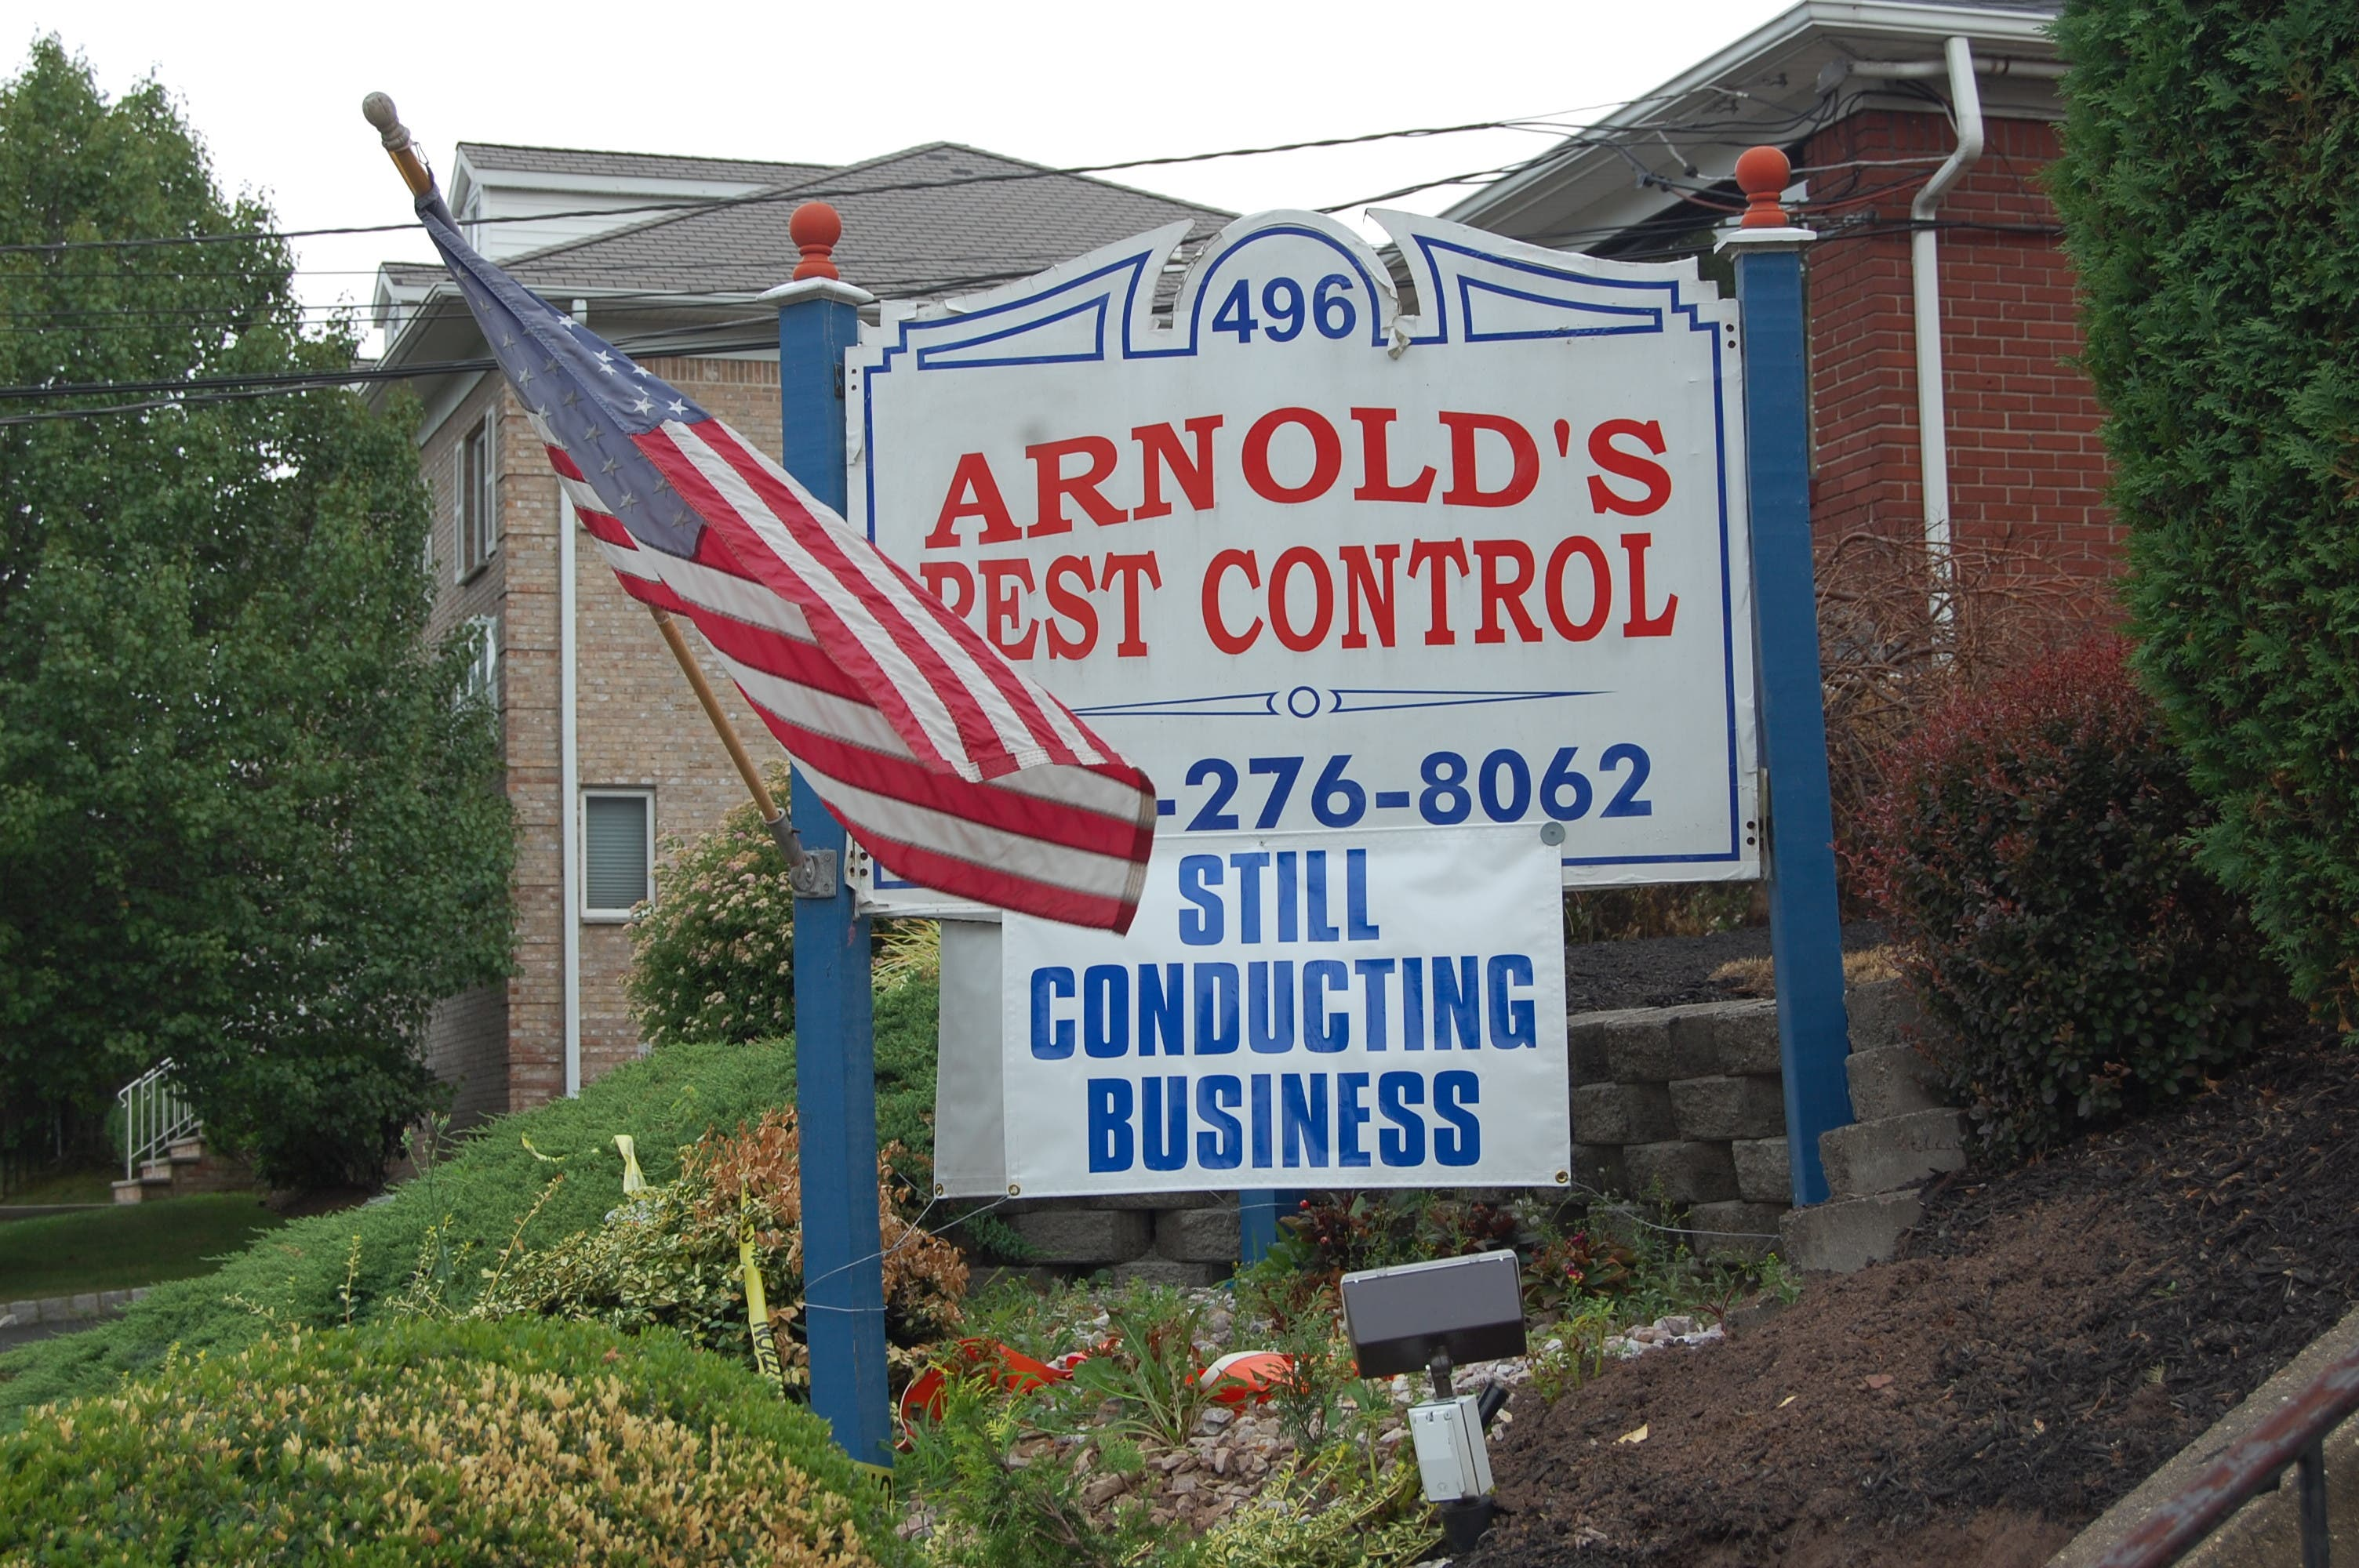 Arnold S Pest Control Continues Business As Usual Cranford Nj Patch